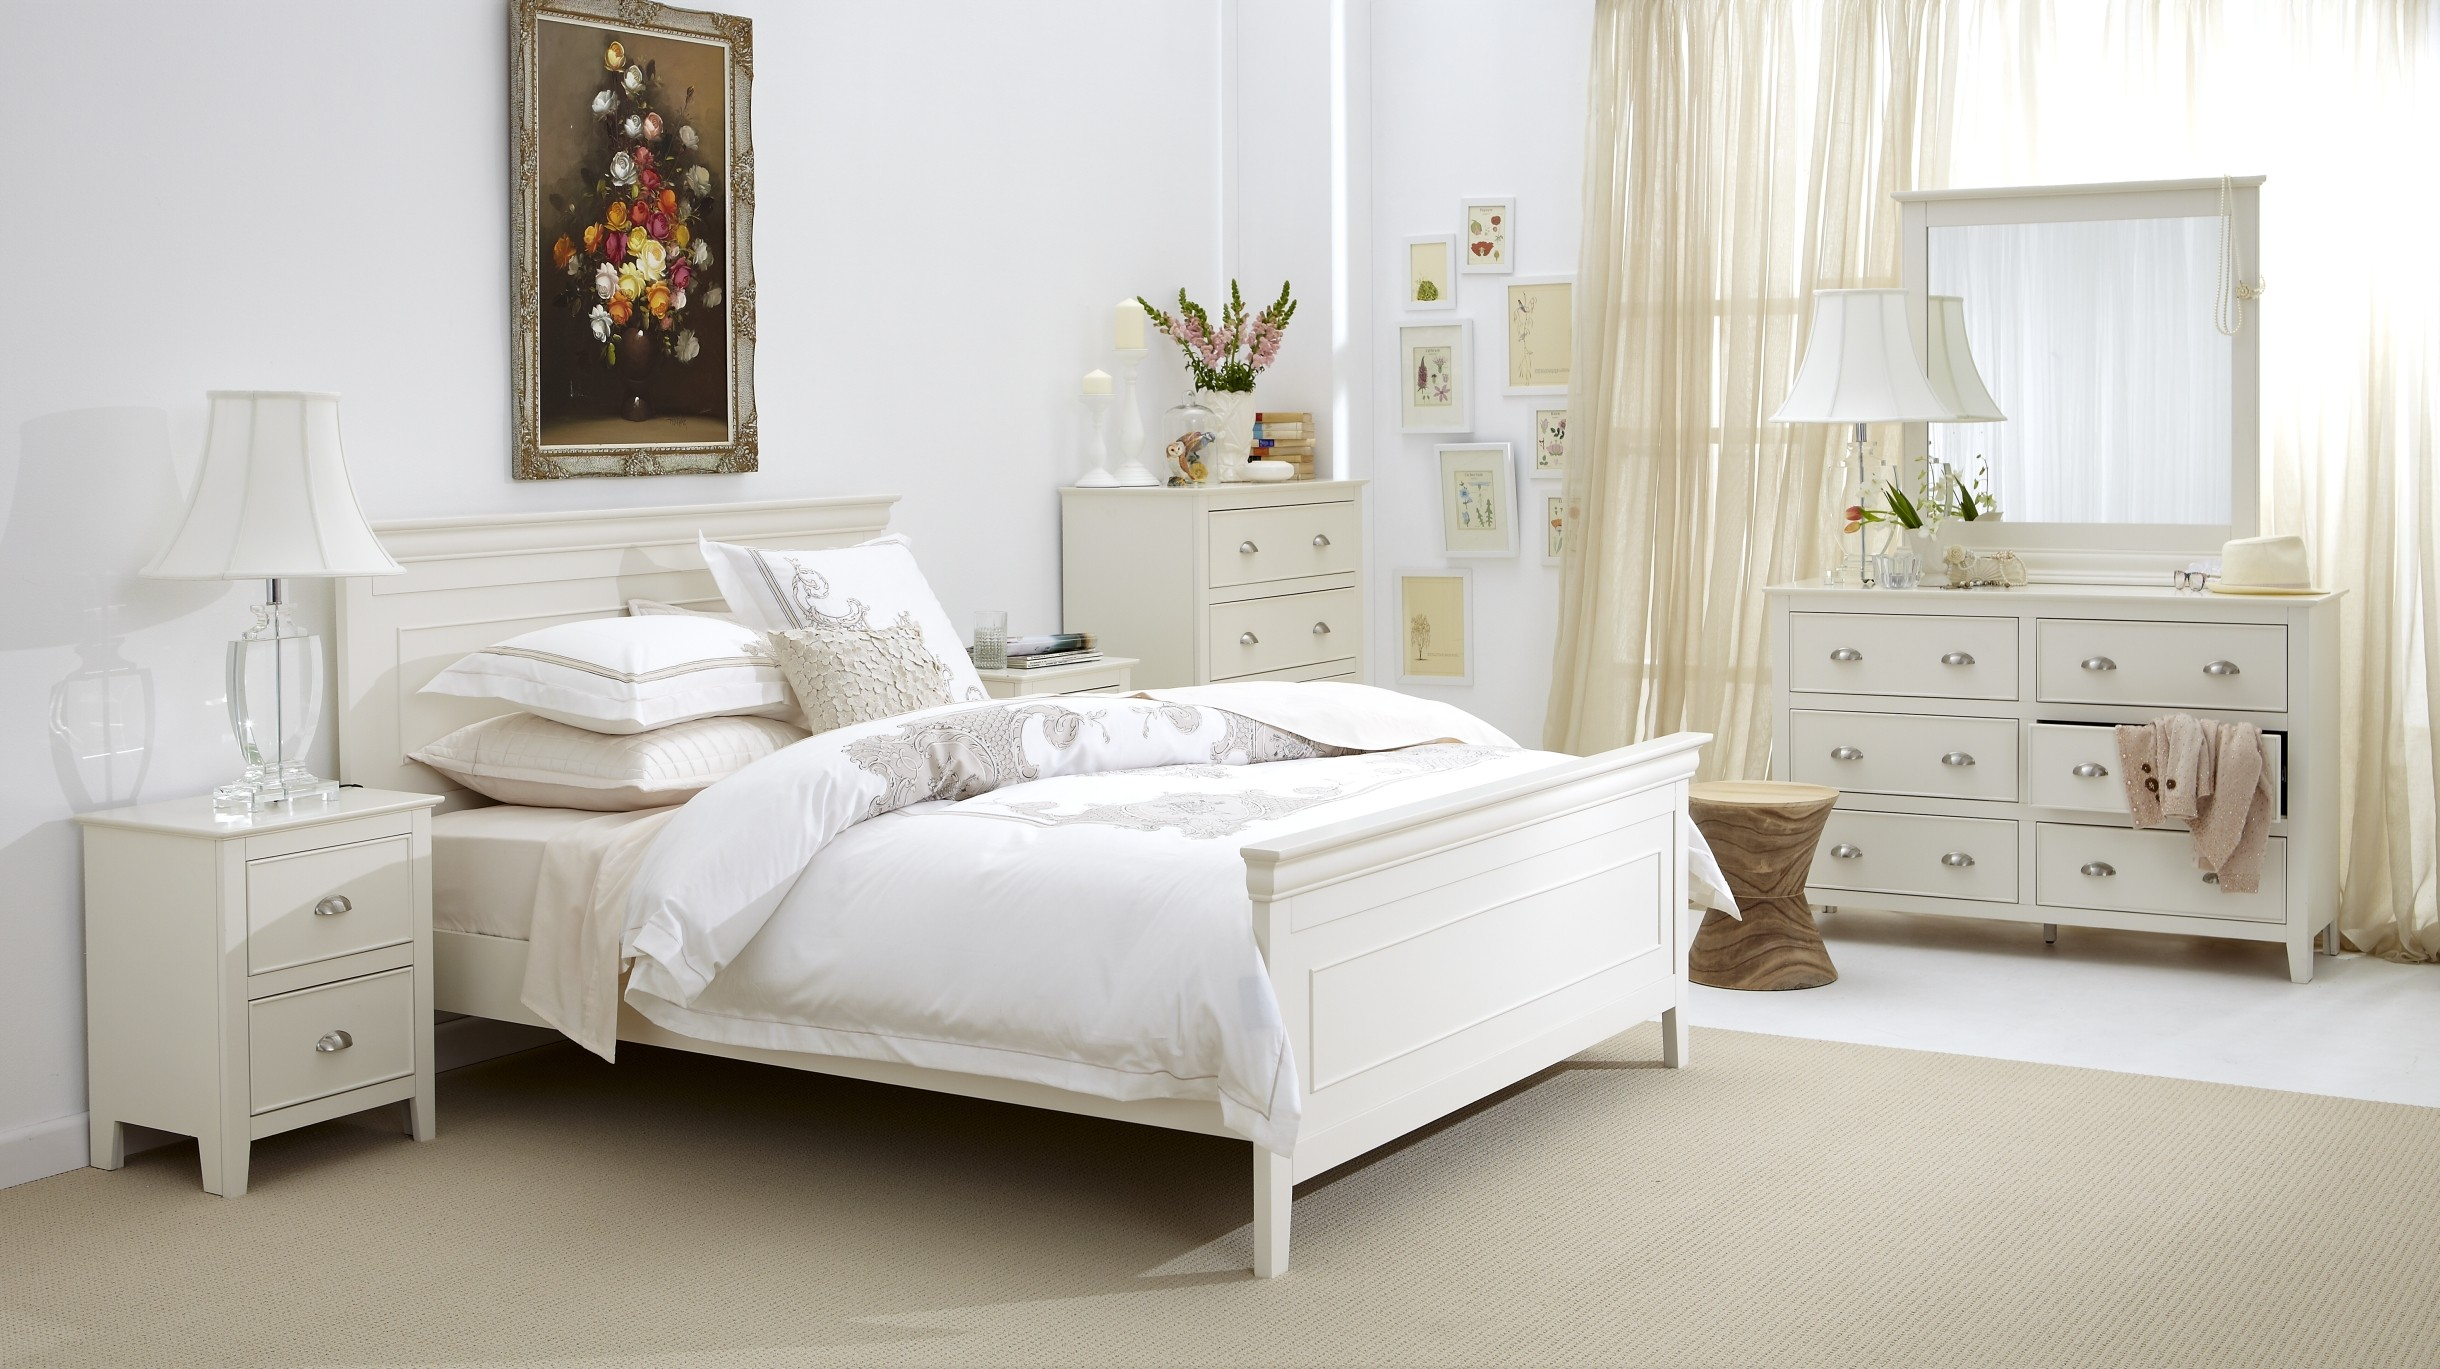 bedroom with white furniture decorating ideas photo - 7